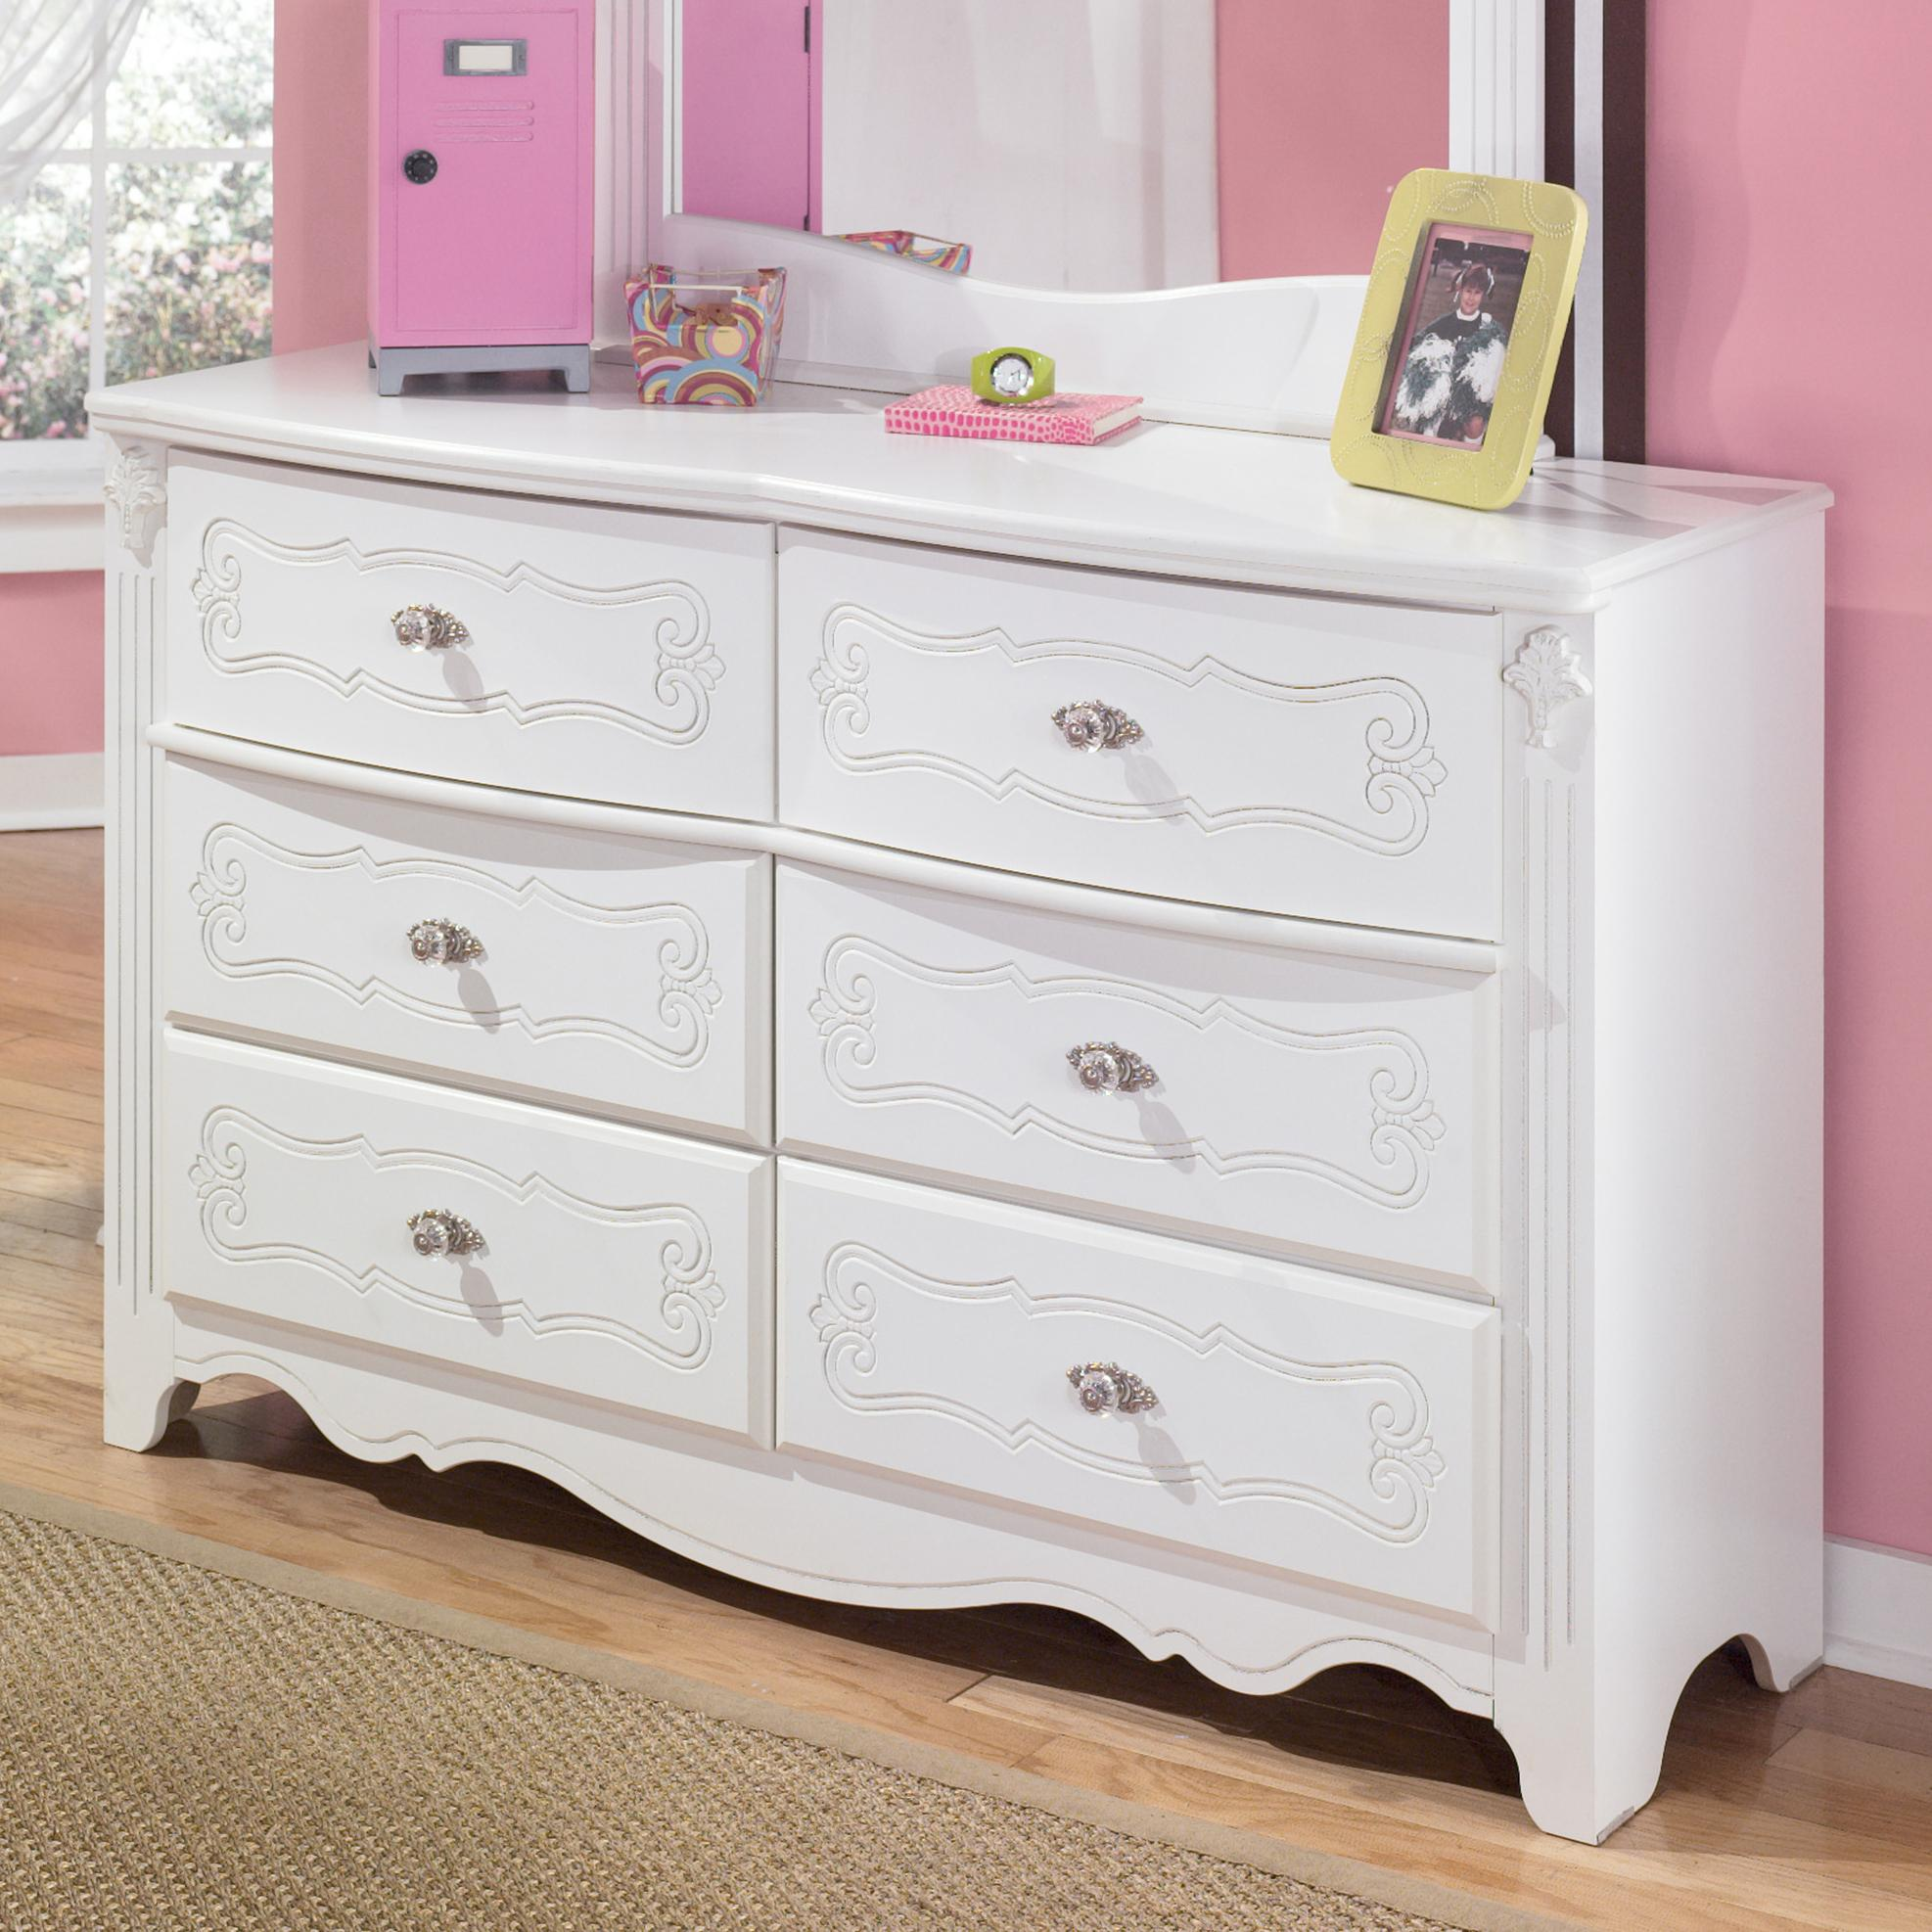 Signature Design by Ashley Exquisite Dresser - Item Number: B188-21